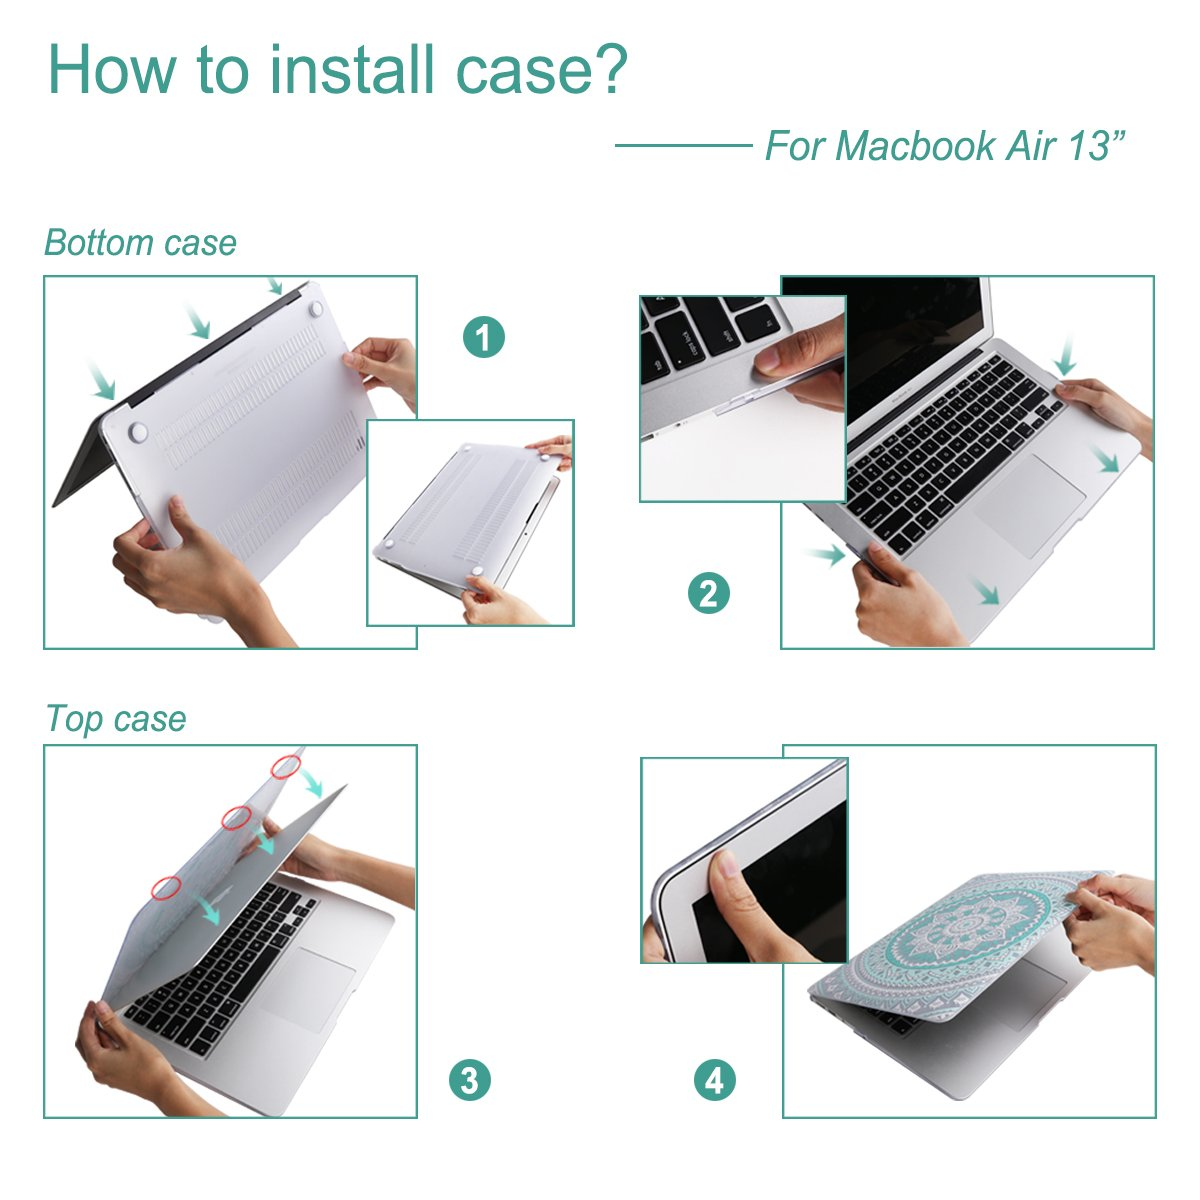 MacBook Air 13 inch Case,iCasso Hard Shell Plastic Protective Case Cover for Apple Laptop MacBook Air 13 Inch Model A1369/A1466 with Keyboard Cover (Serenity Blue)